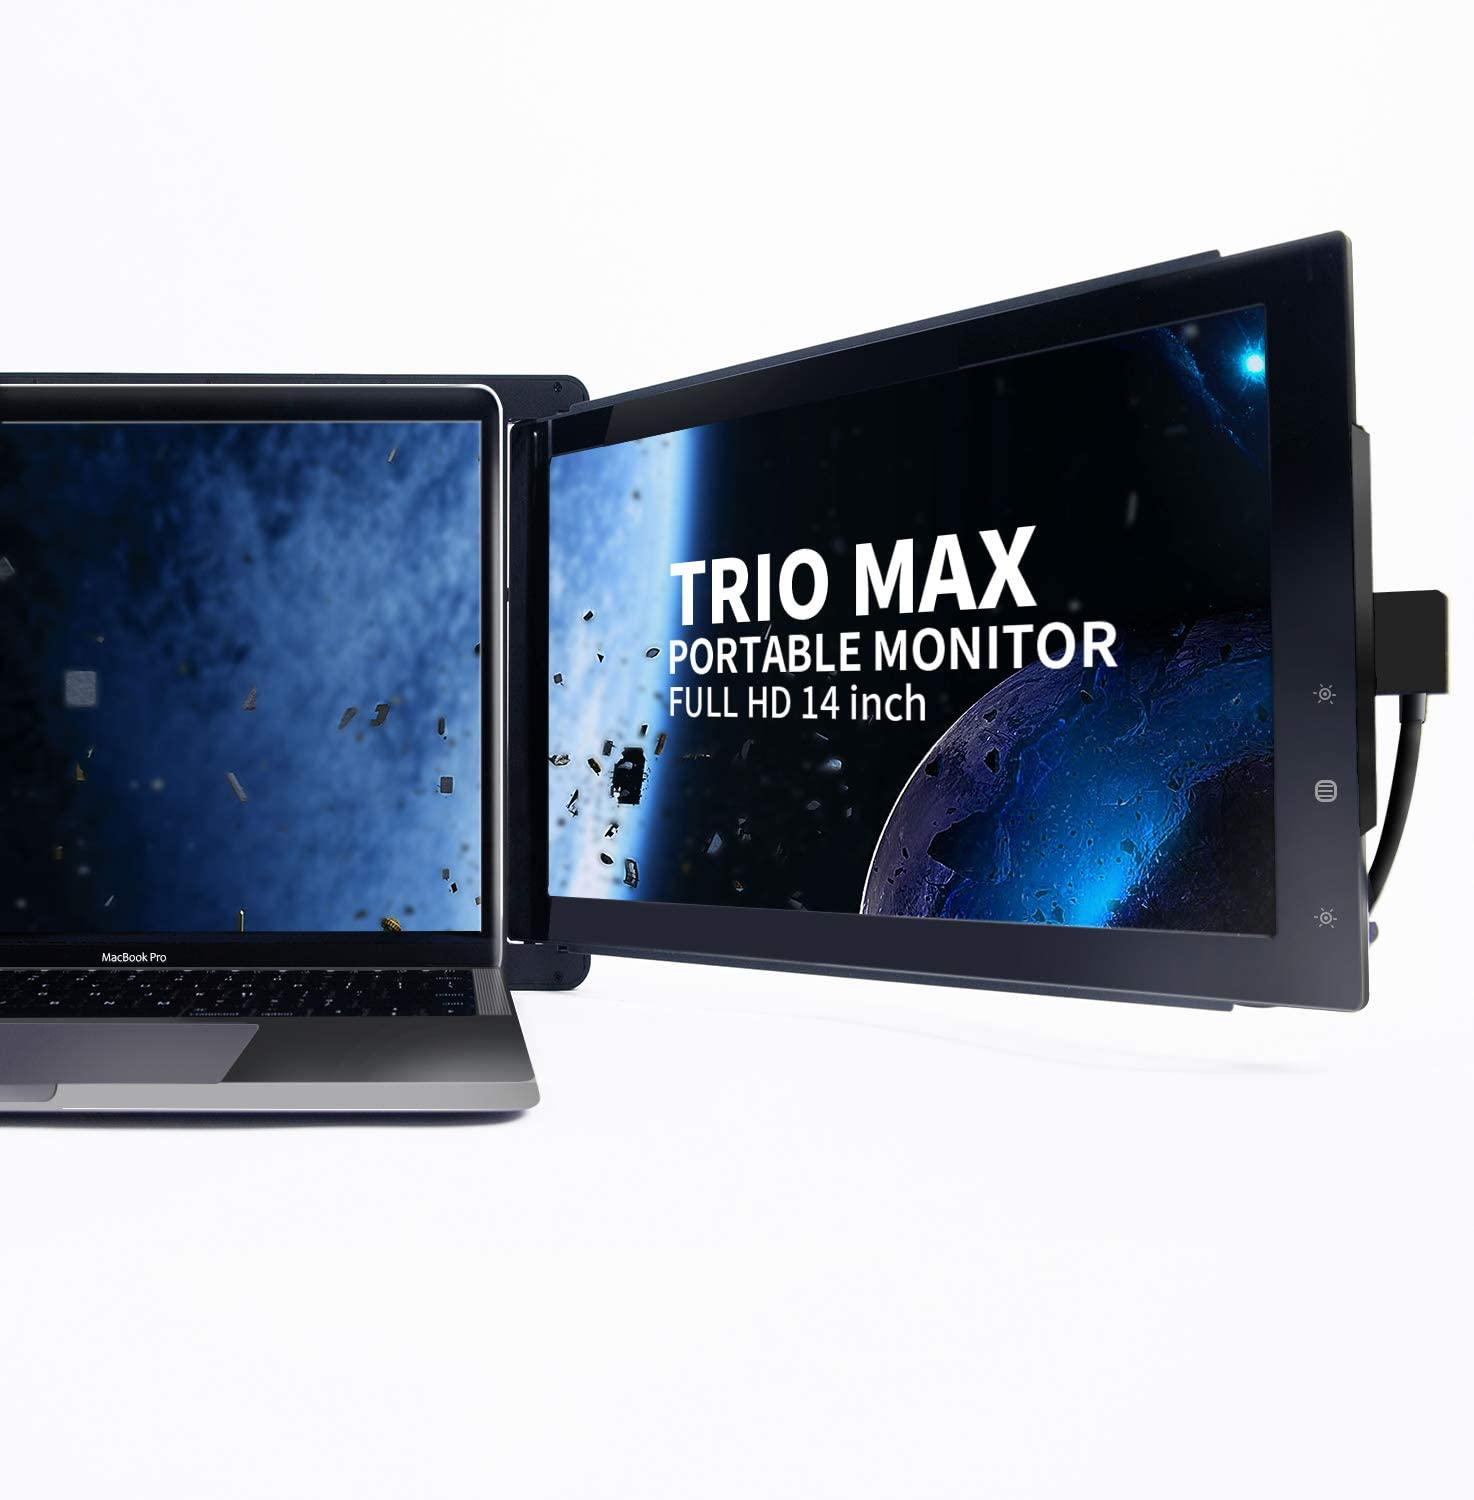 "Trio Max Slide Portable Monitor for Laptop with Extra Cord, 14"" FHD 1080P Attachable Second Laptop Screen,Lightweight Design 13-17"" Laptops Windows/OS/Android/Nintendo Switch(one max Screen)"